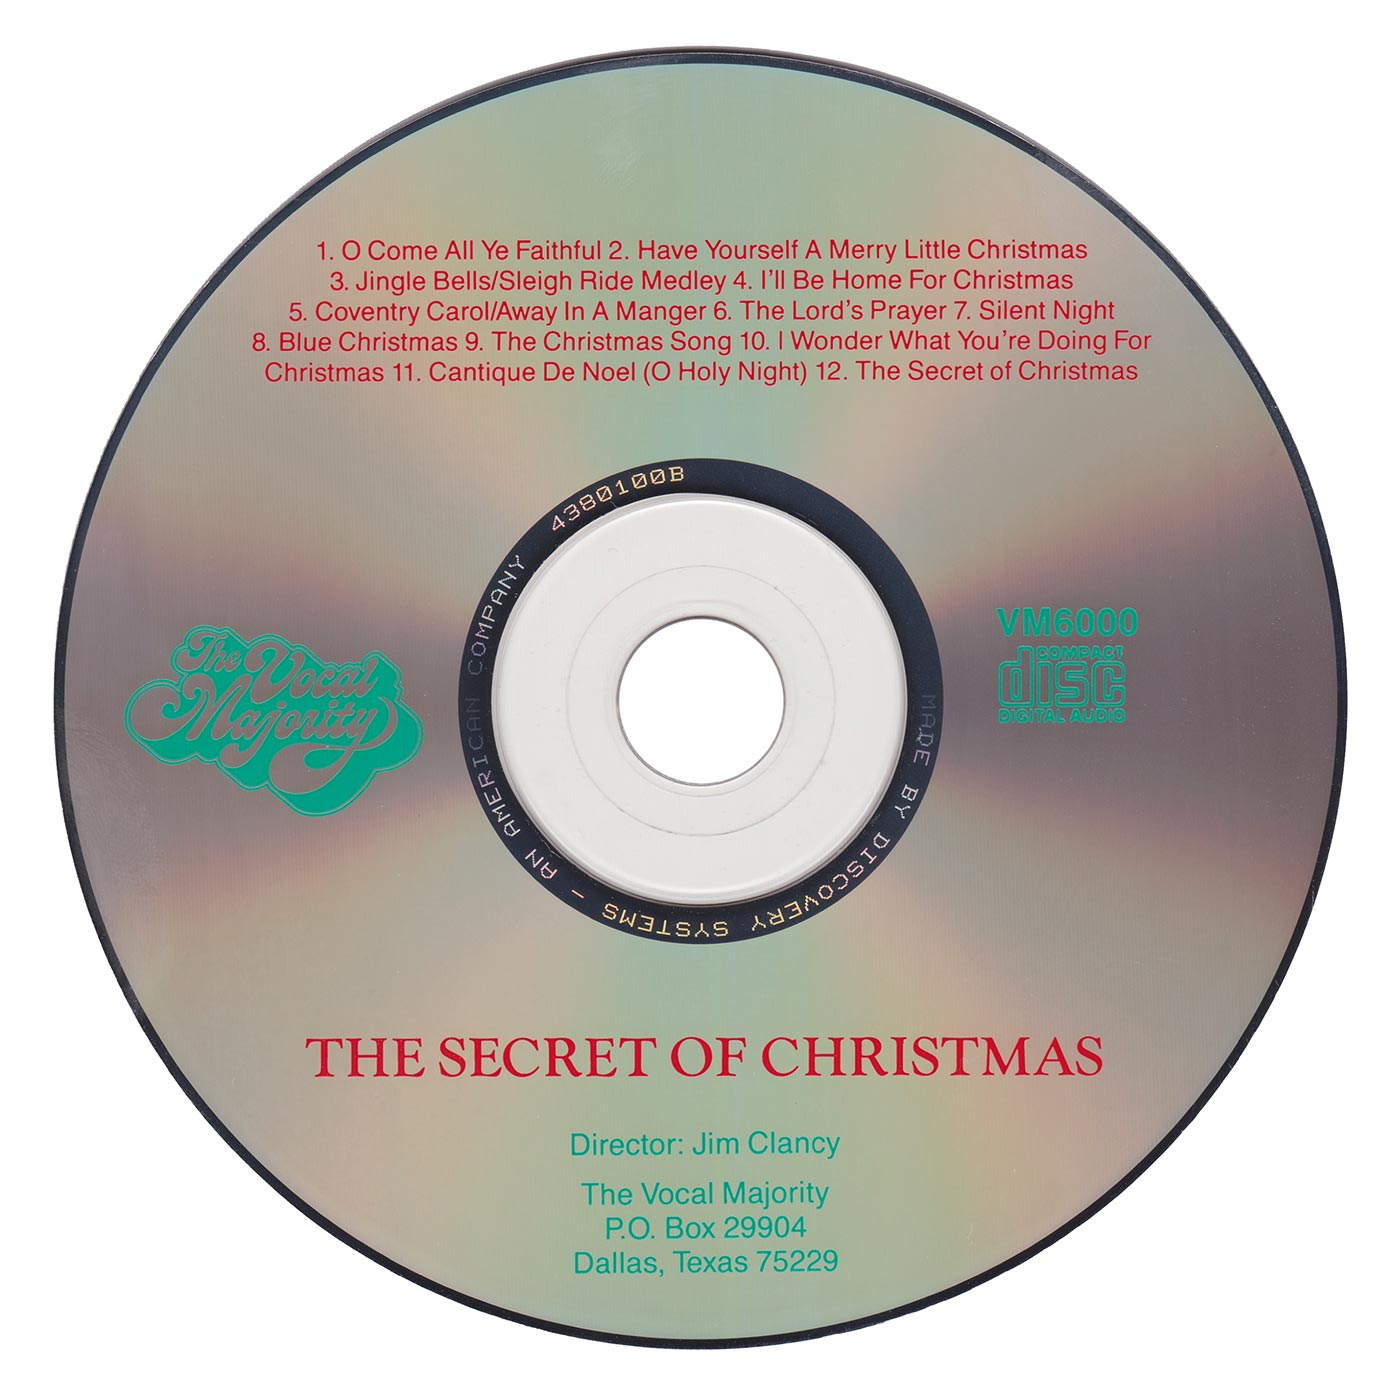 Disc Art: The Secret of Christmas